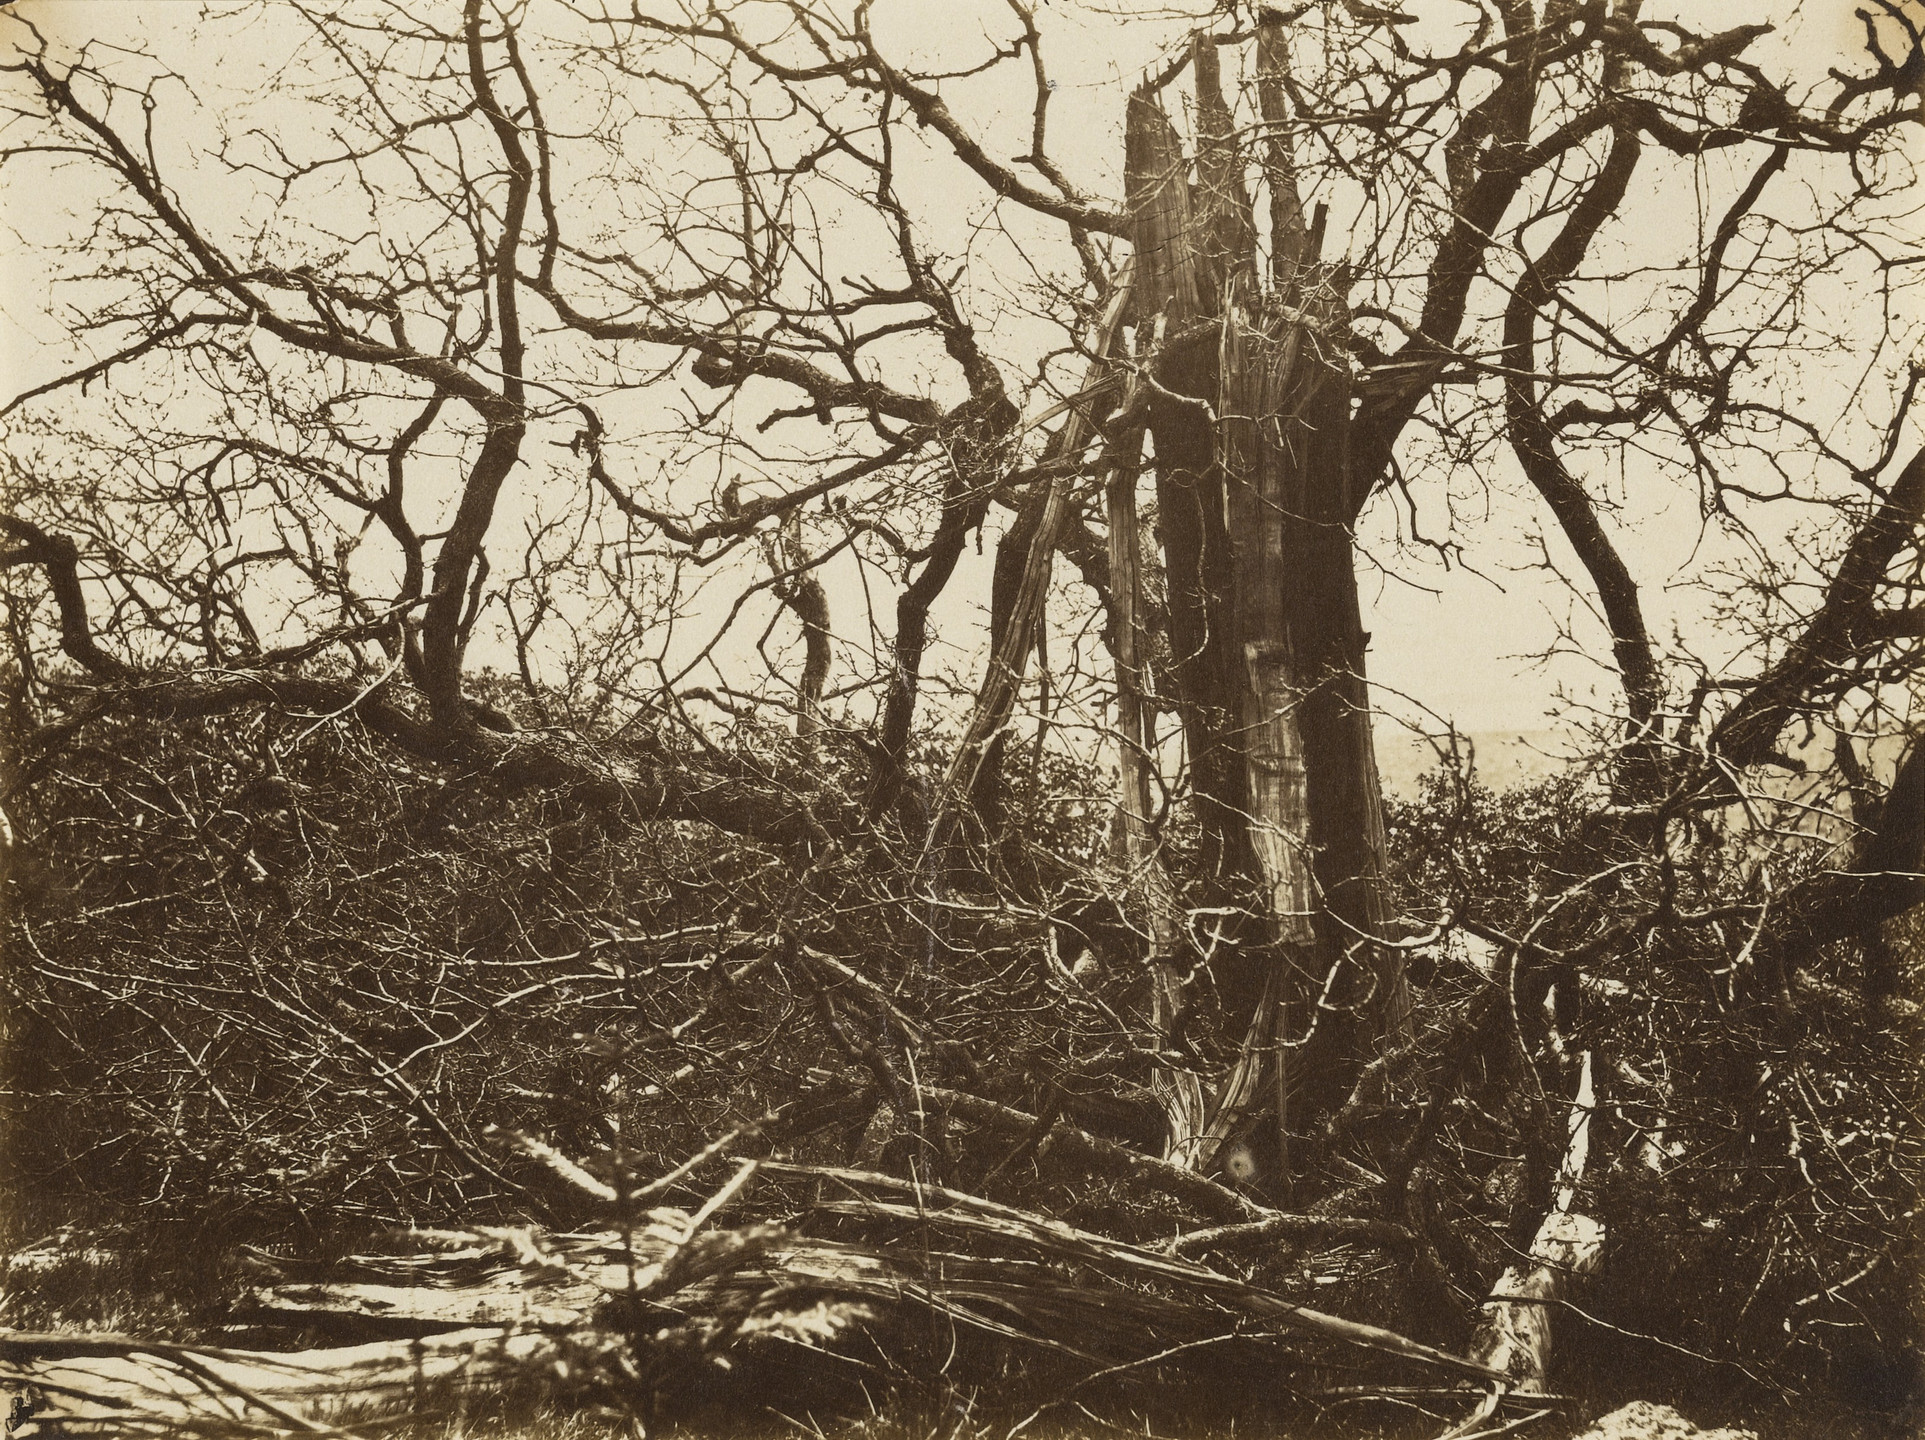 Alfred Capel Cure. Tree Struck by Lightning, Hill Hall, Essex. March 1858